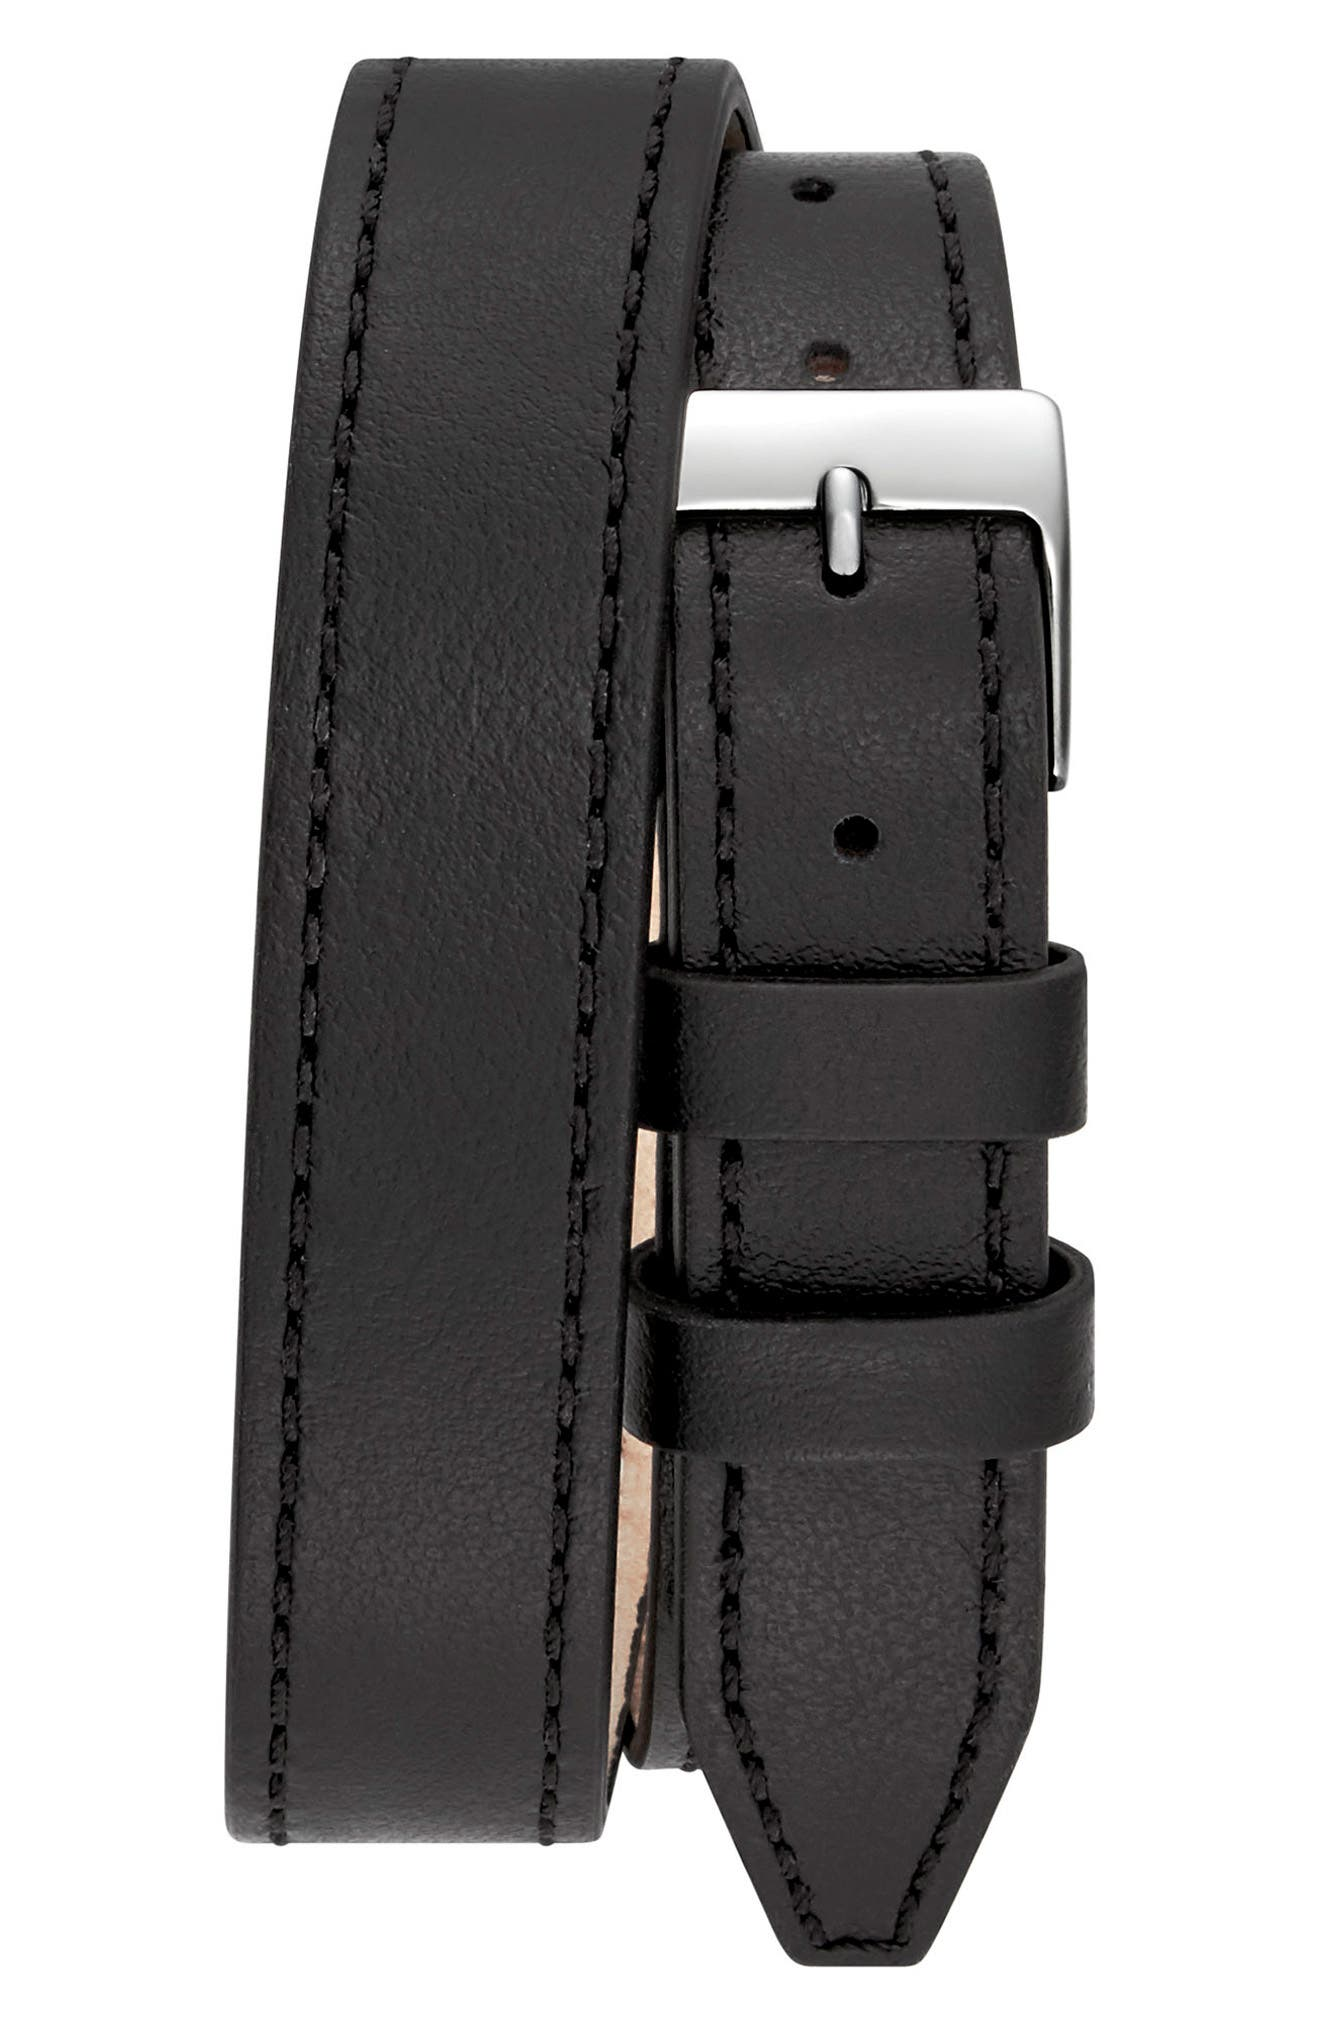 Moment Wrap Leather Strap Watch, 19mm x 30mm,                             Alternate thumbnail 2, color,                             001